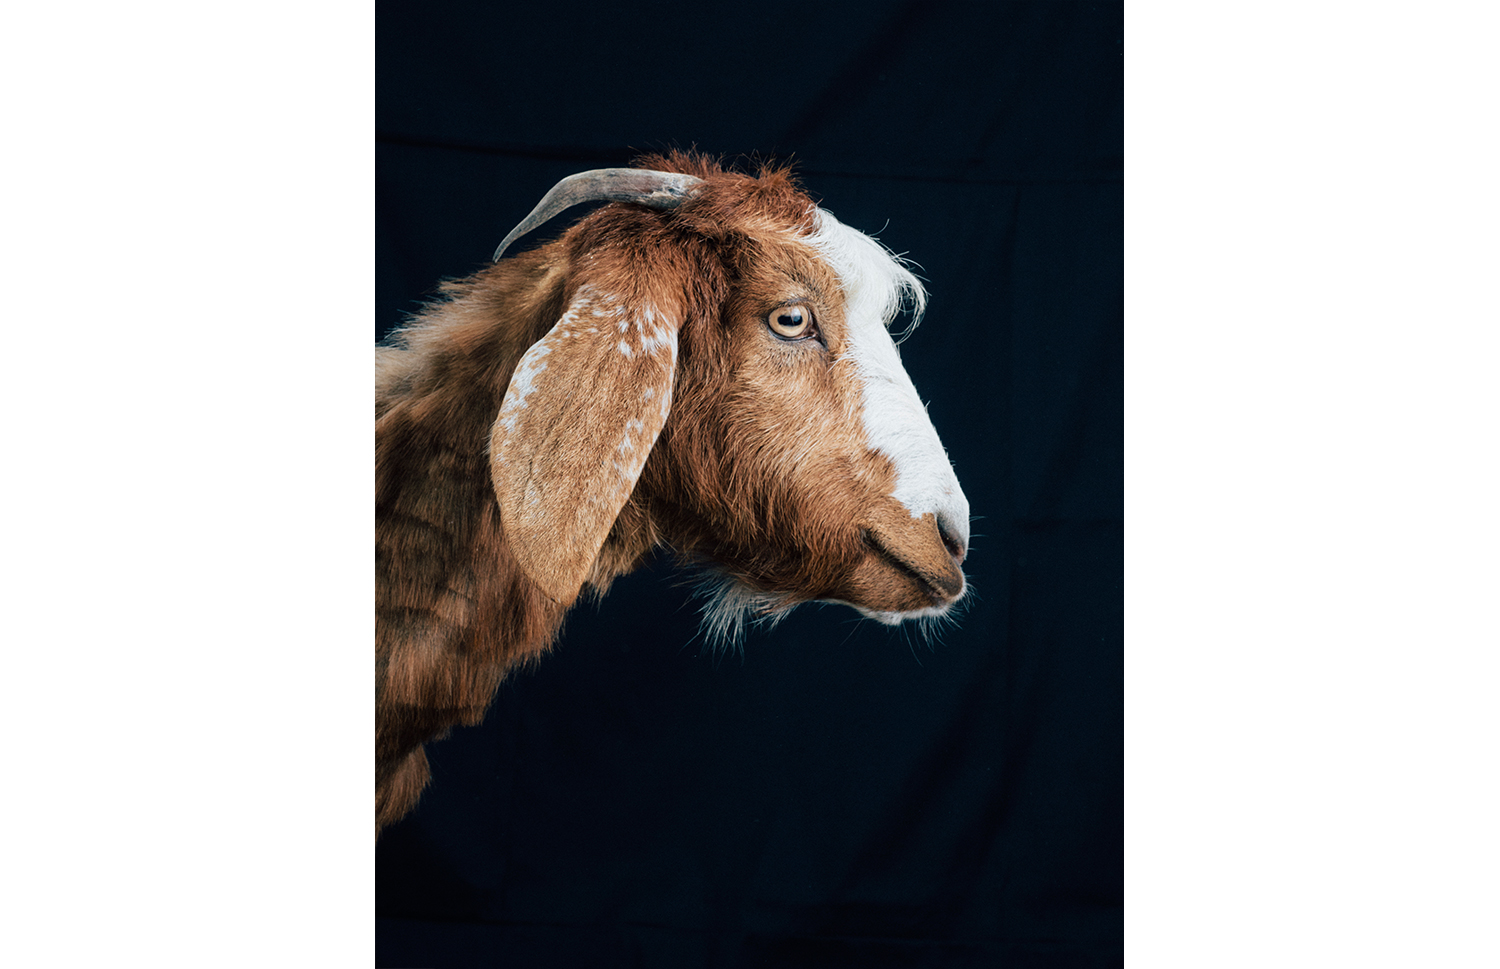 ijfkeridgley-oman-goat-portrait7.jpg